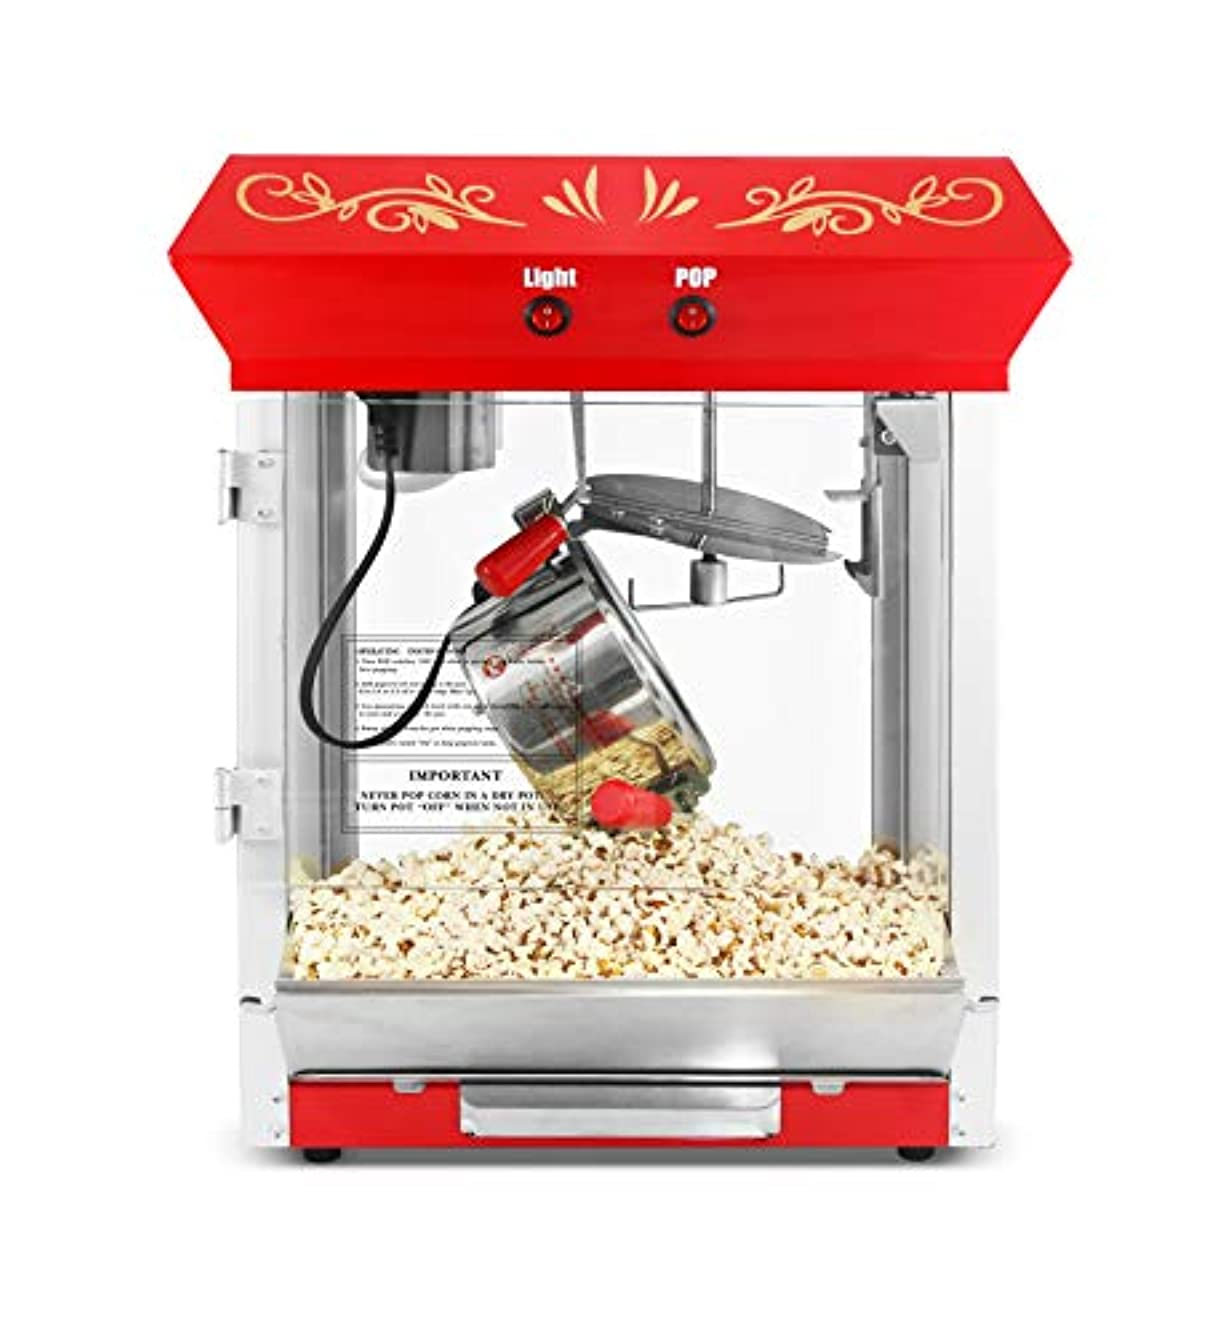 Maxi-Matic Table Top Popcorn Popper, One Size, EPM-487